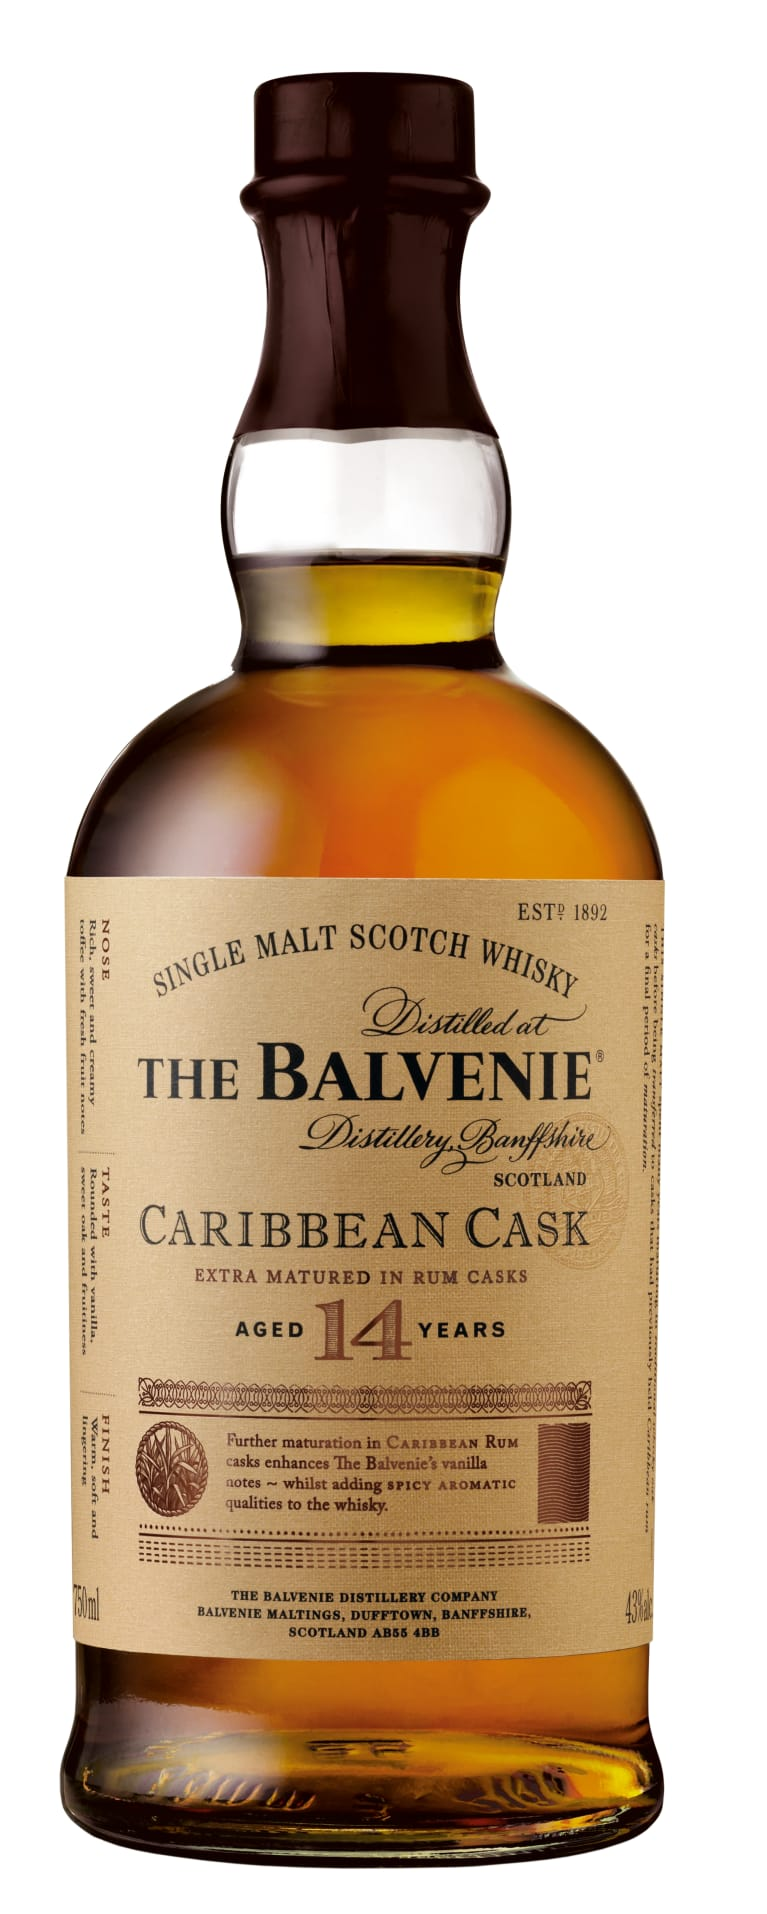 The Balvenie Caribbean Cask 14 Year Old Single Malt Scotch Whisky  Front Bottle Shot